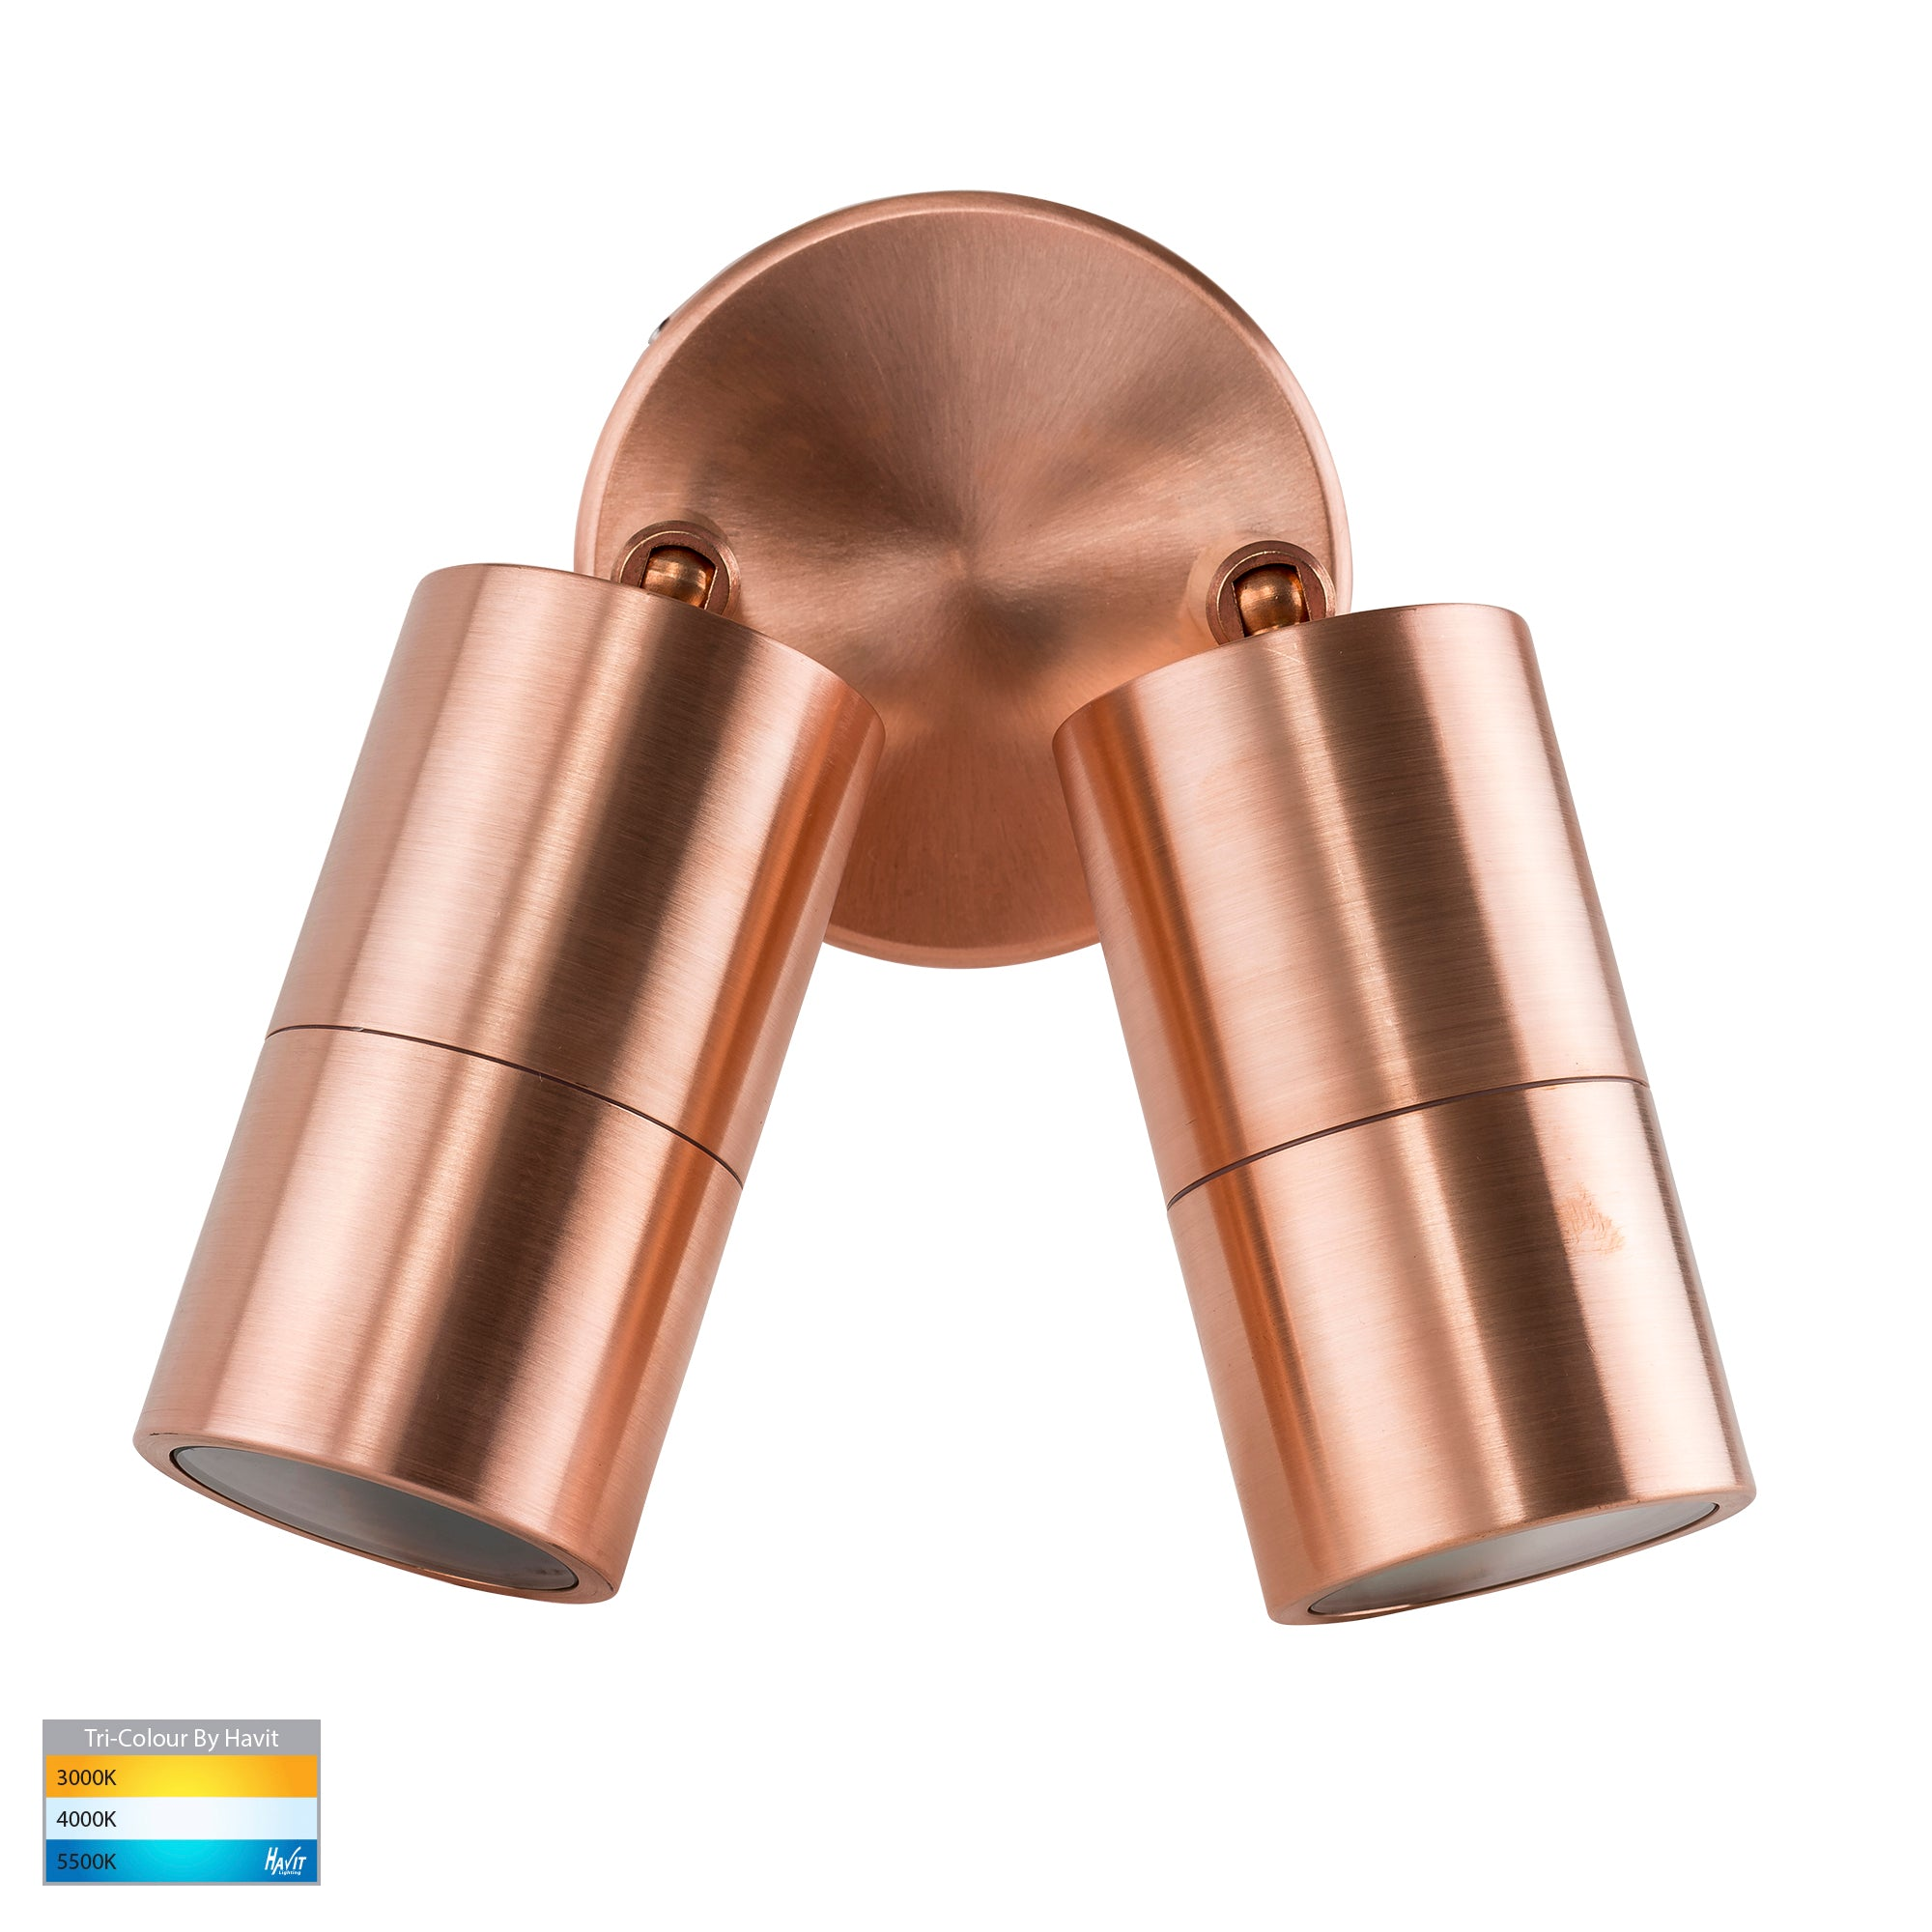 HV1315T-HV1317T - Tivah Solid Copper TRI Colour Double Adjustable Wall Pillar Lights